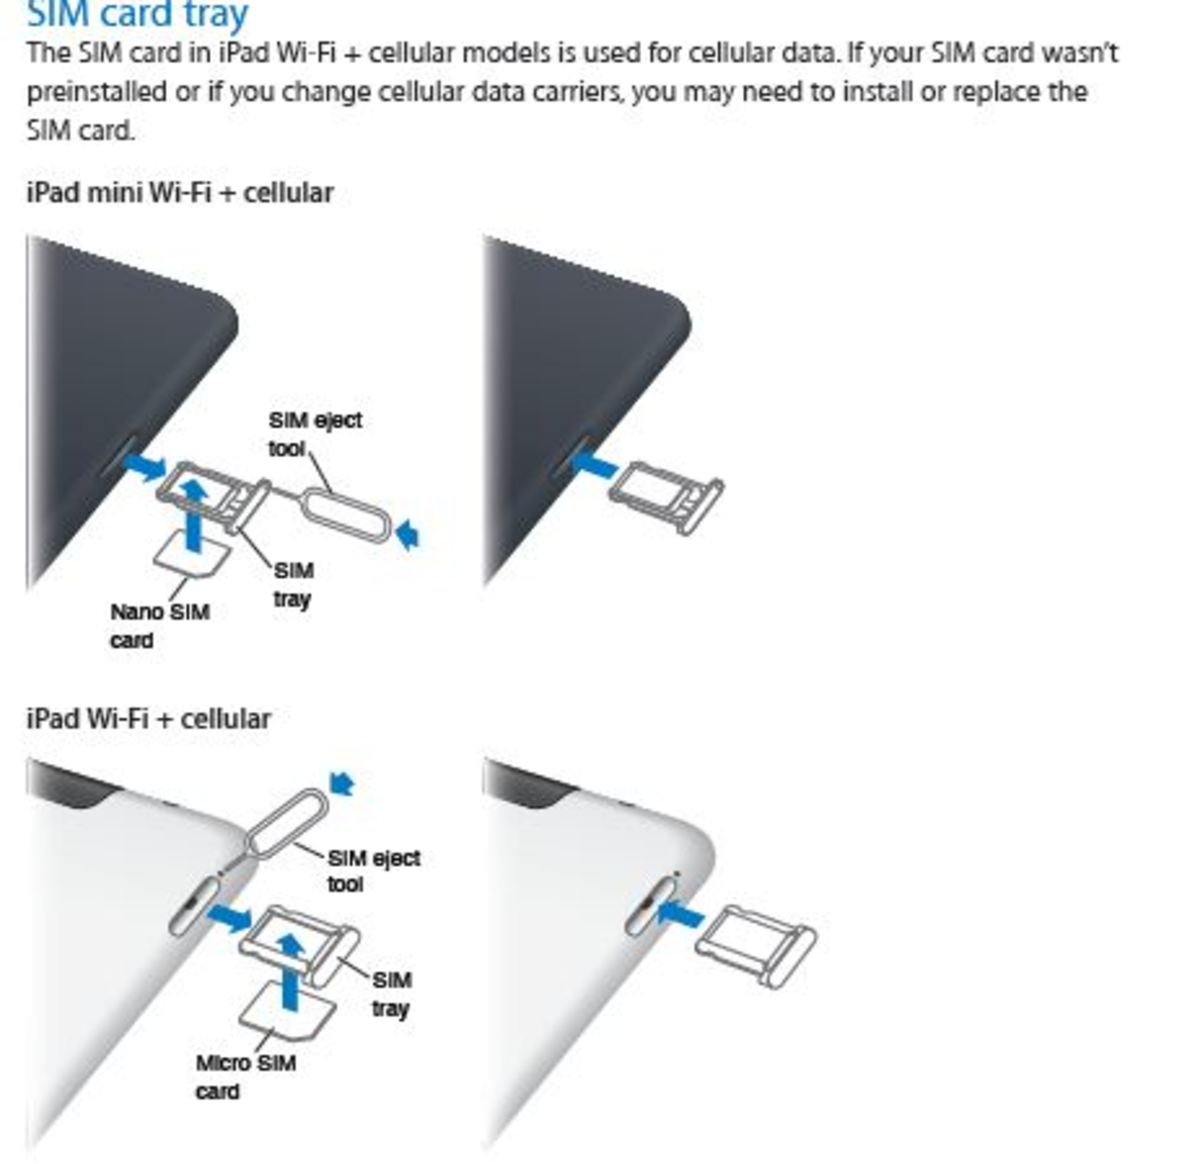 Included in the user guide is this diagram which demonstrates how to properly use a SIM card tray.